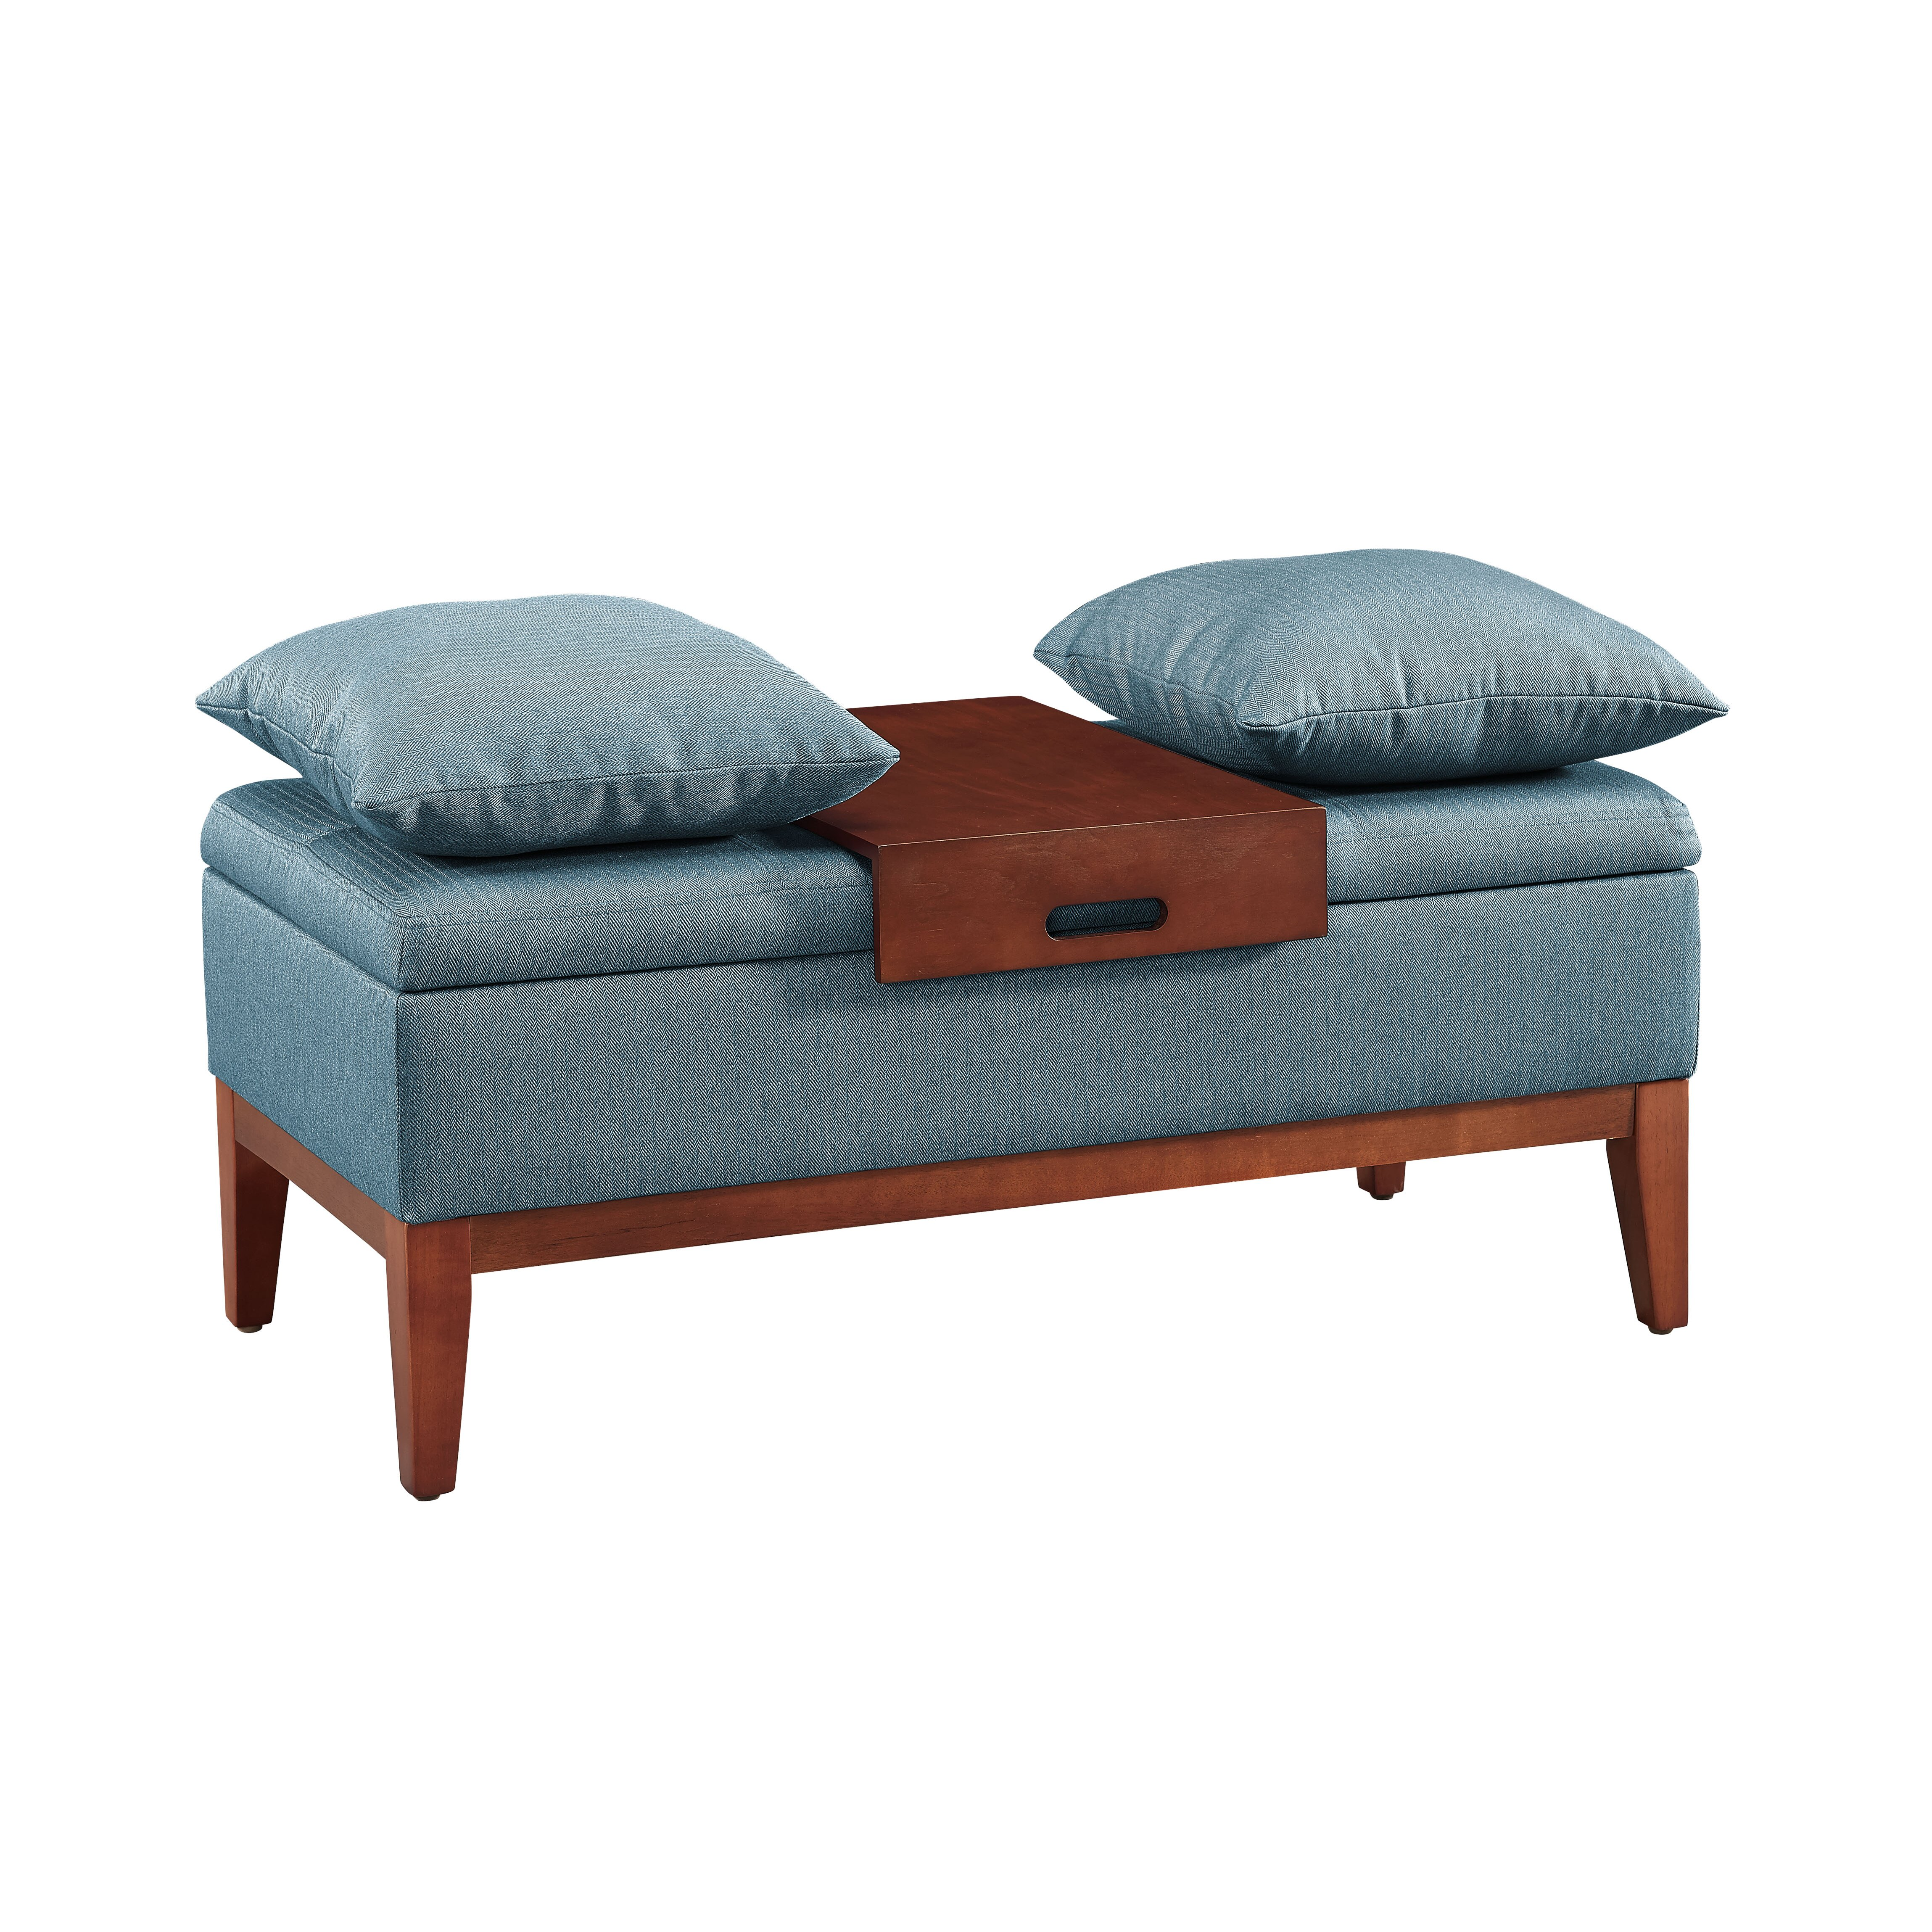 Andover Mills Ravenwood Upholstered Storage Bench: Andover Mills Upholstered Storage Bench & Reviews